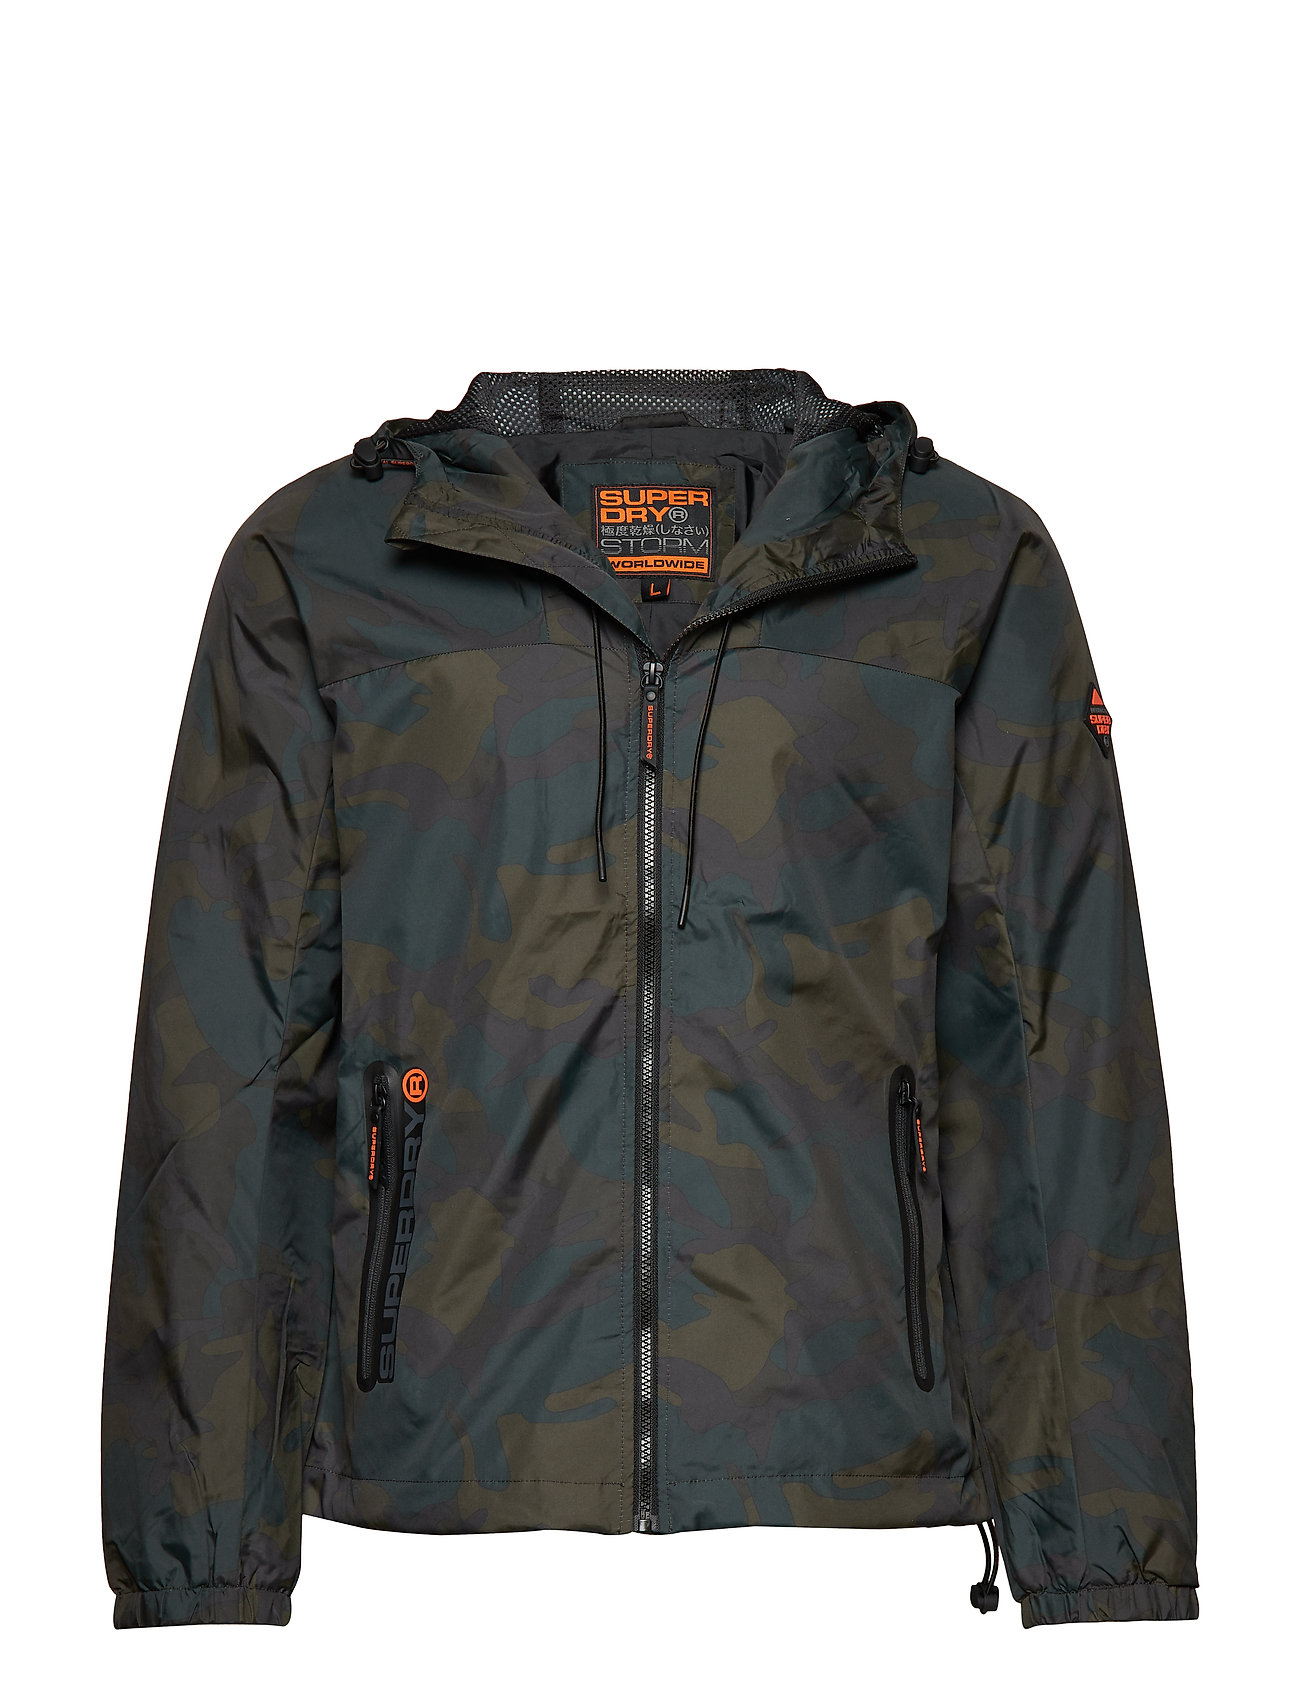 Superdry SUPERSTORM CAGOULE - MOODY CAMO